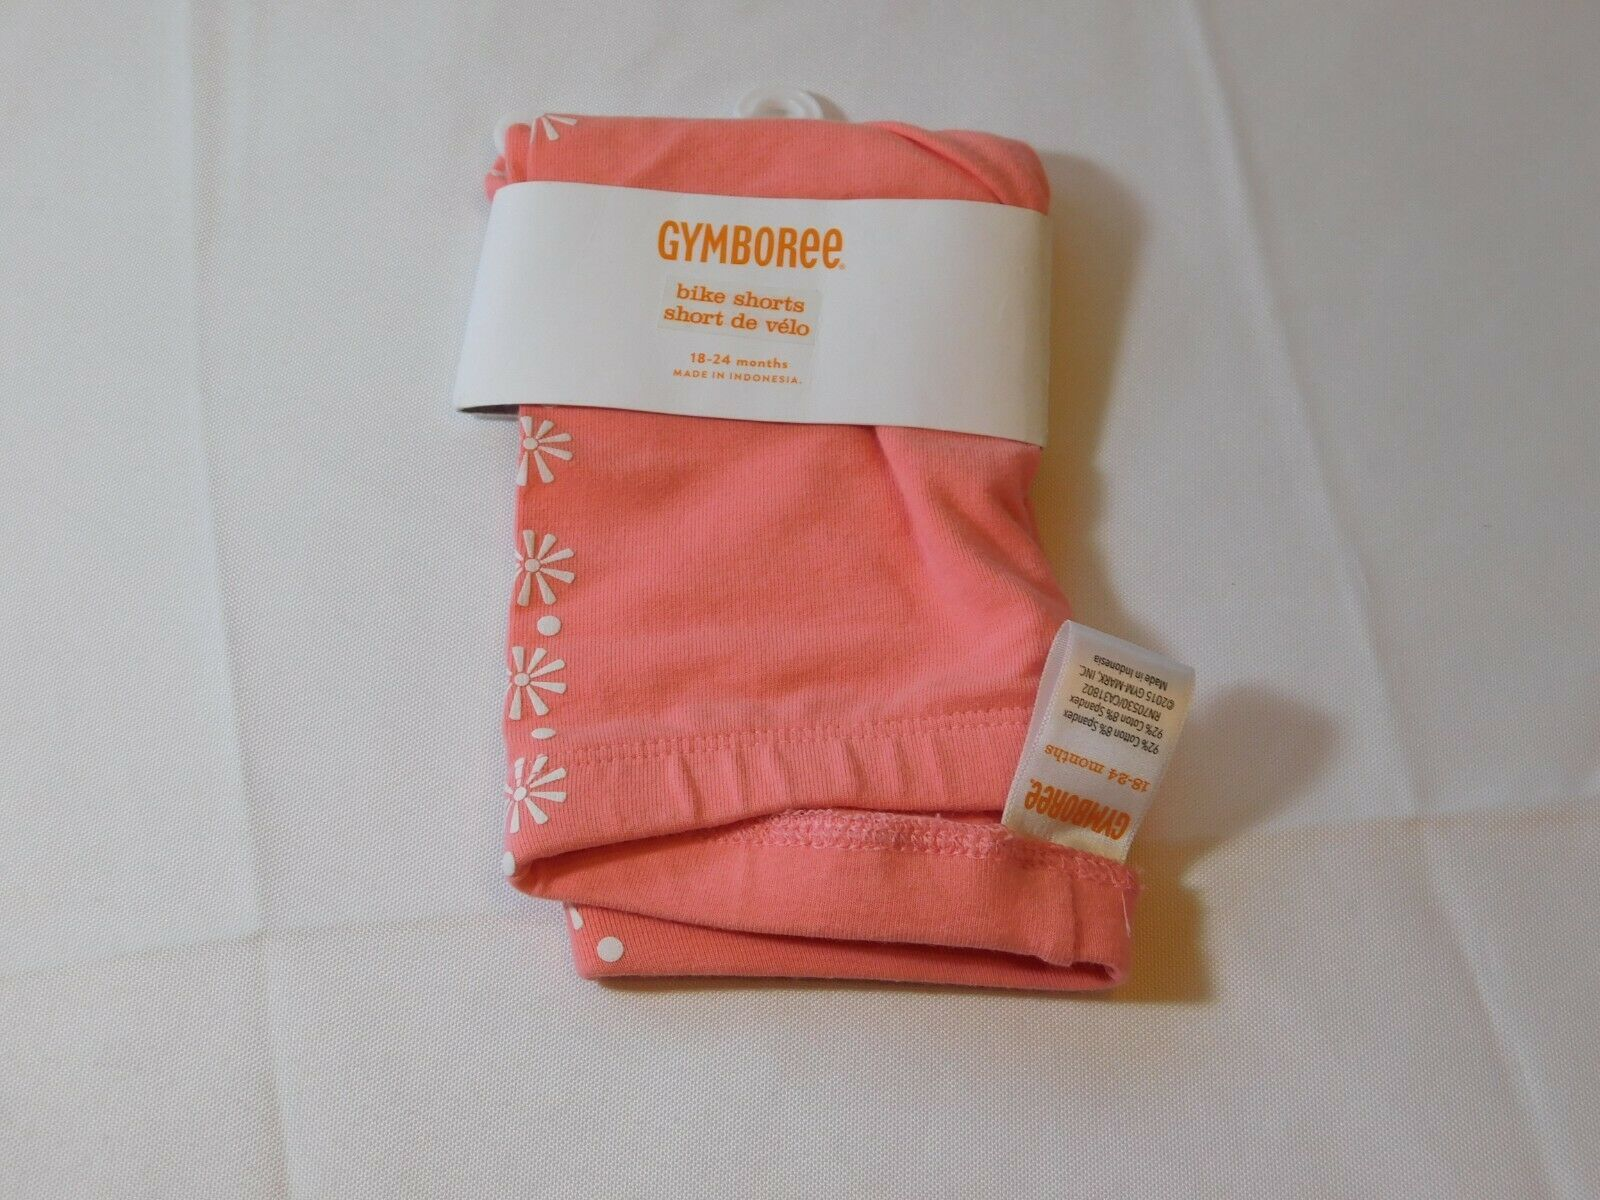 Primary image for Gymboree Baby Girl's Bike Shorts 18-24 Months 15GYMaySM3 coral white NWT